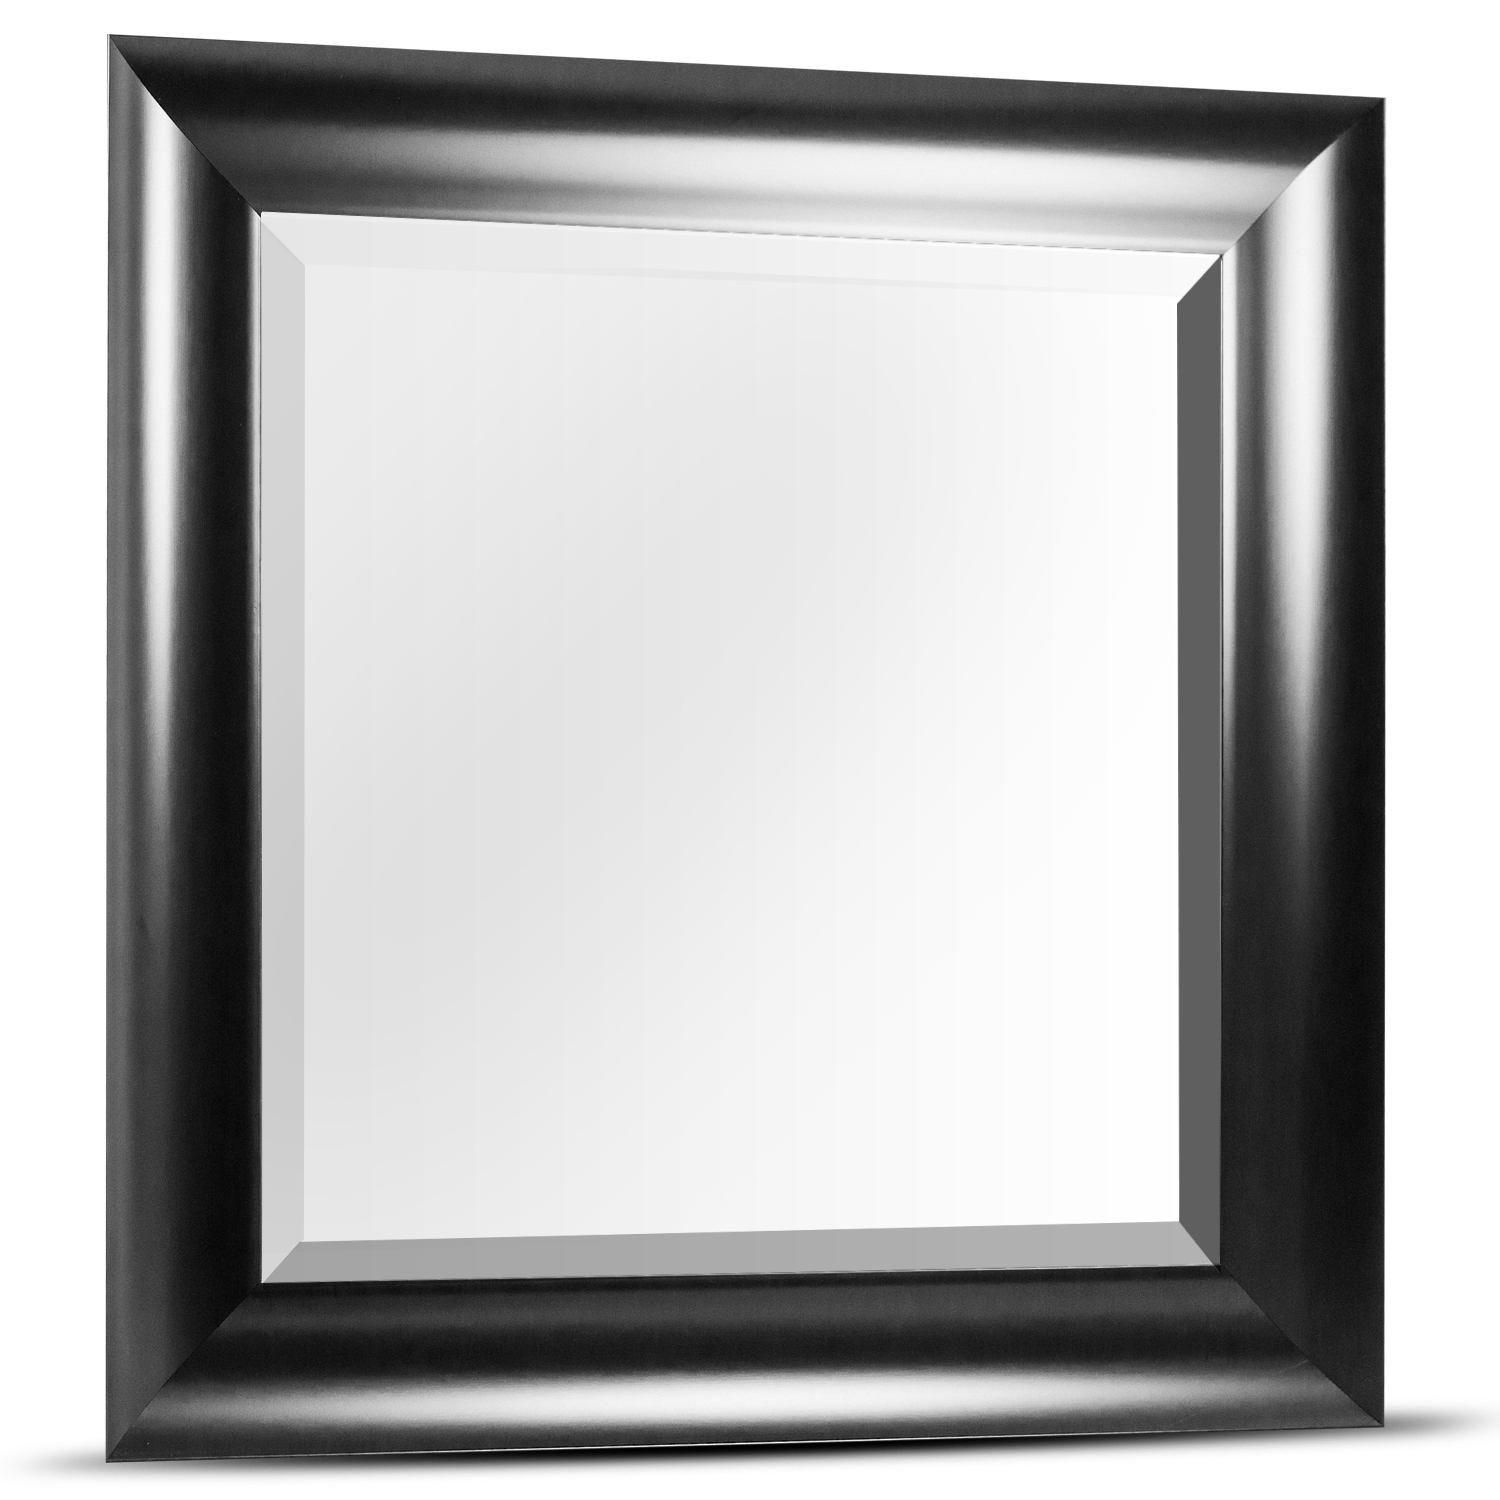 Leighton Medium Square Wall Vanity Mirror